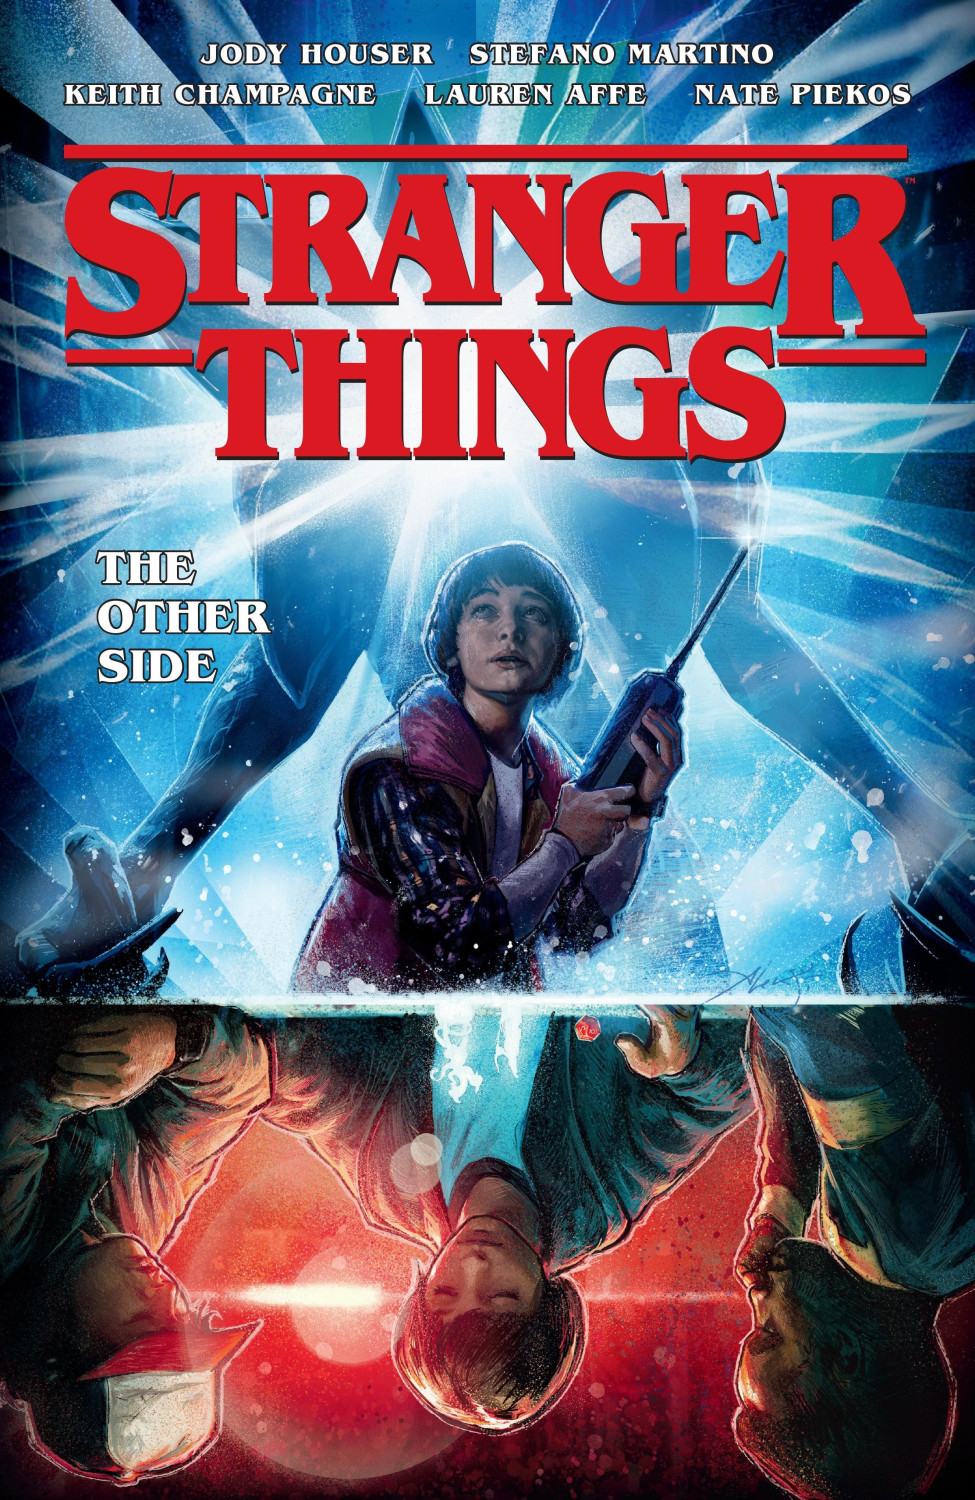 Image of Stranger Things: The Other Side (Graphic Novel Volume 1) (9781506709765)